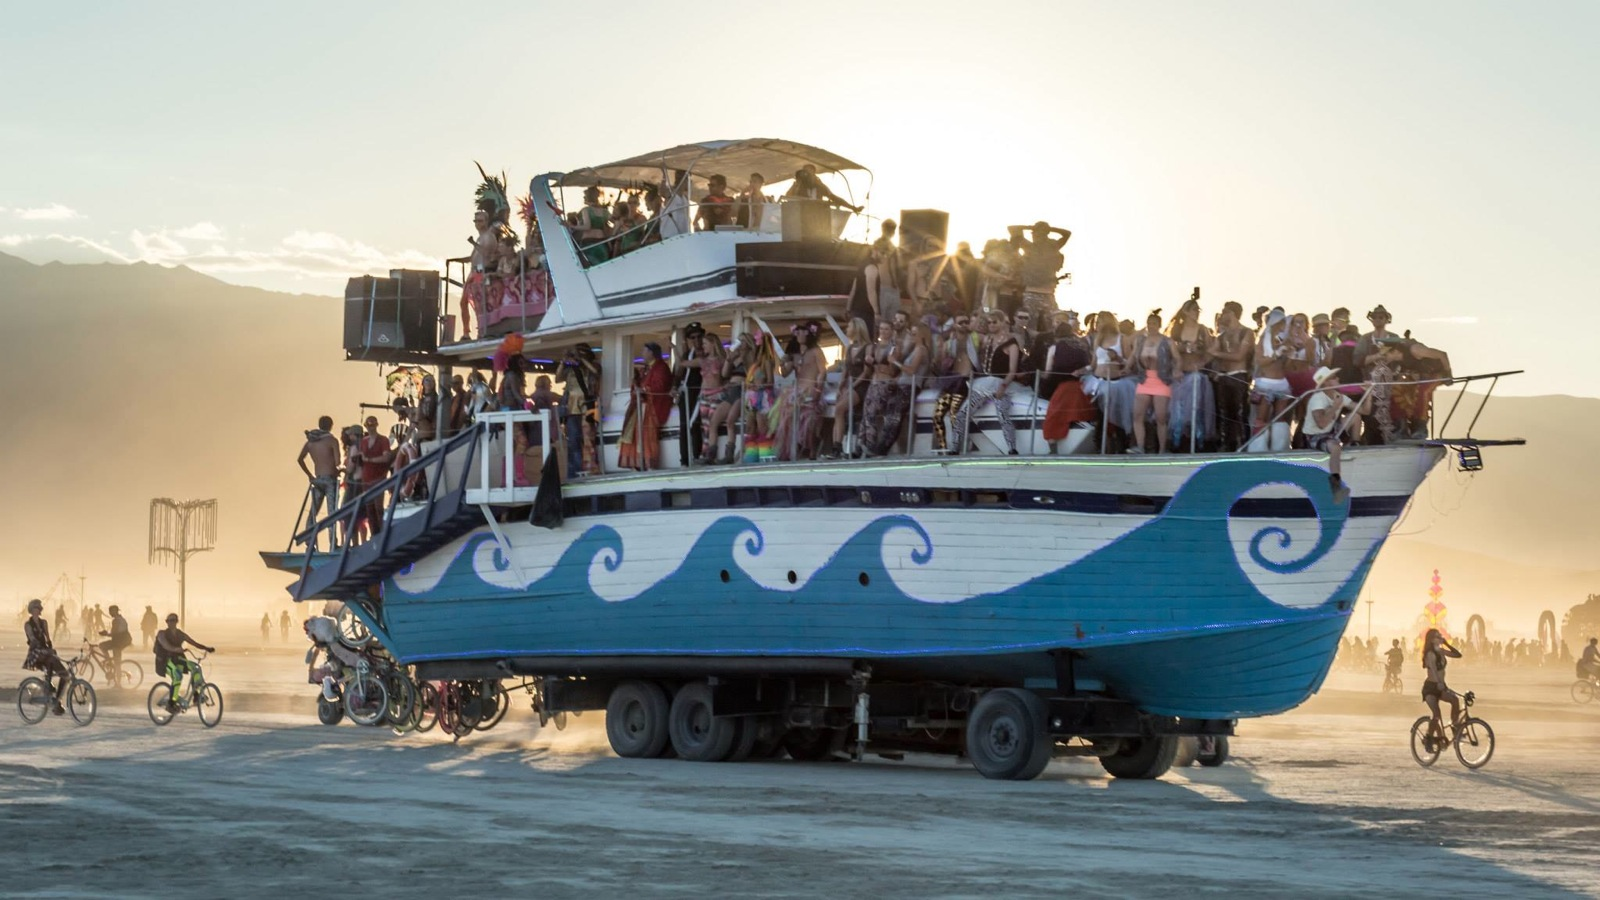 Art Car from Burning Man 2014 Photo: fest300